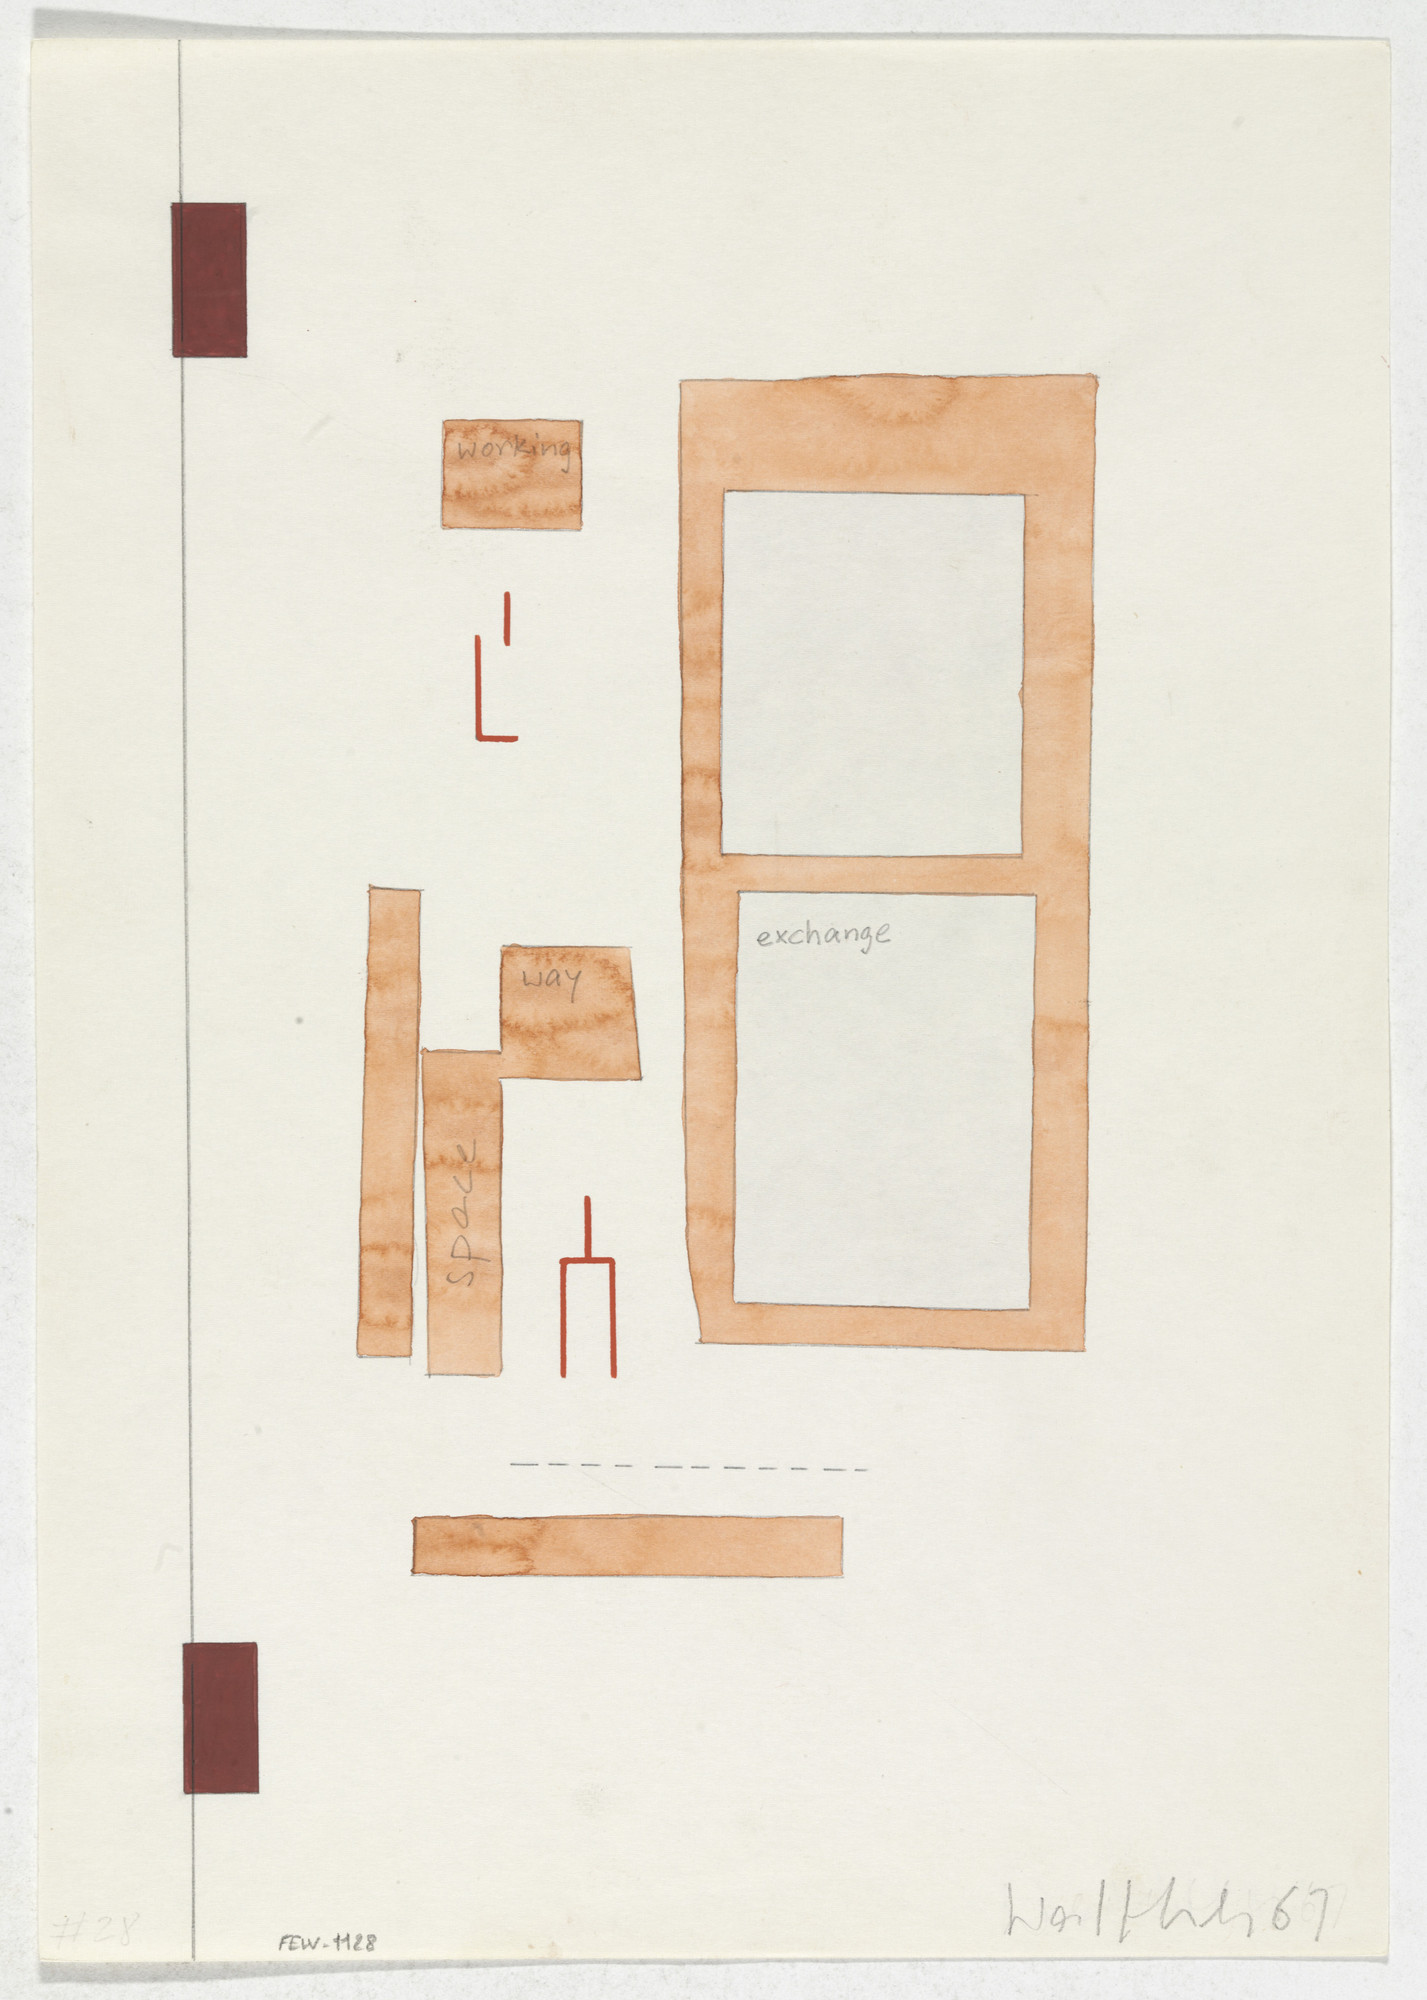 Franz Erhard Walther. Work Drawing: Opposite. 1967